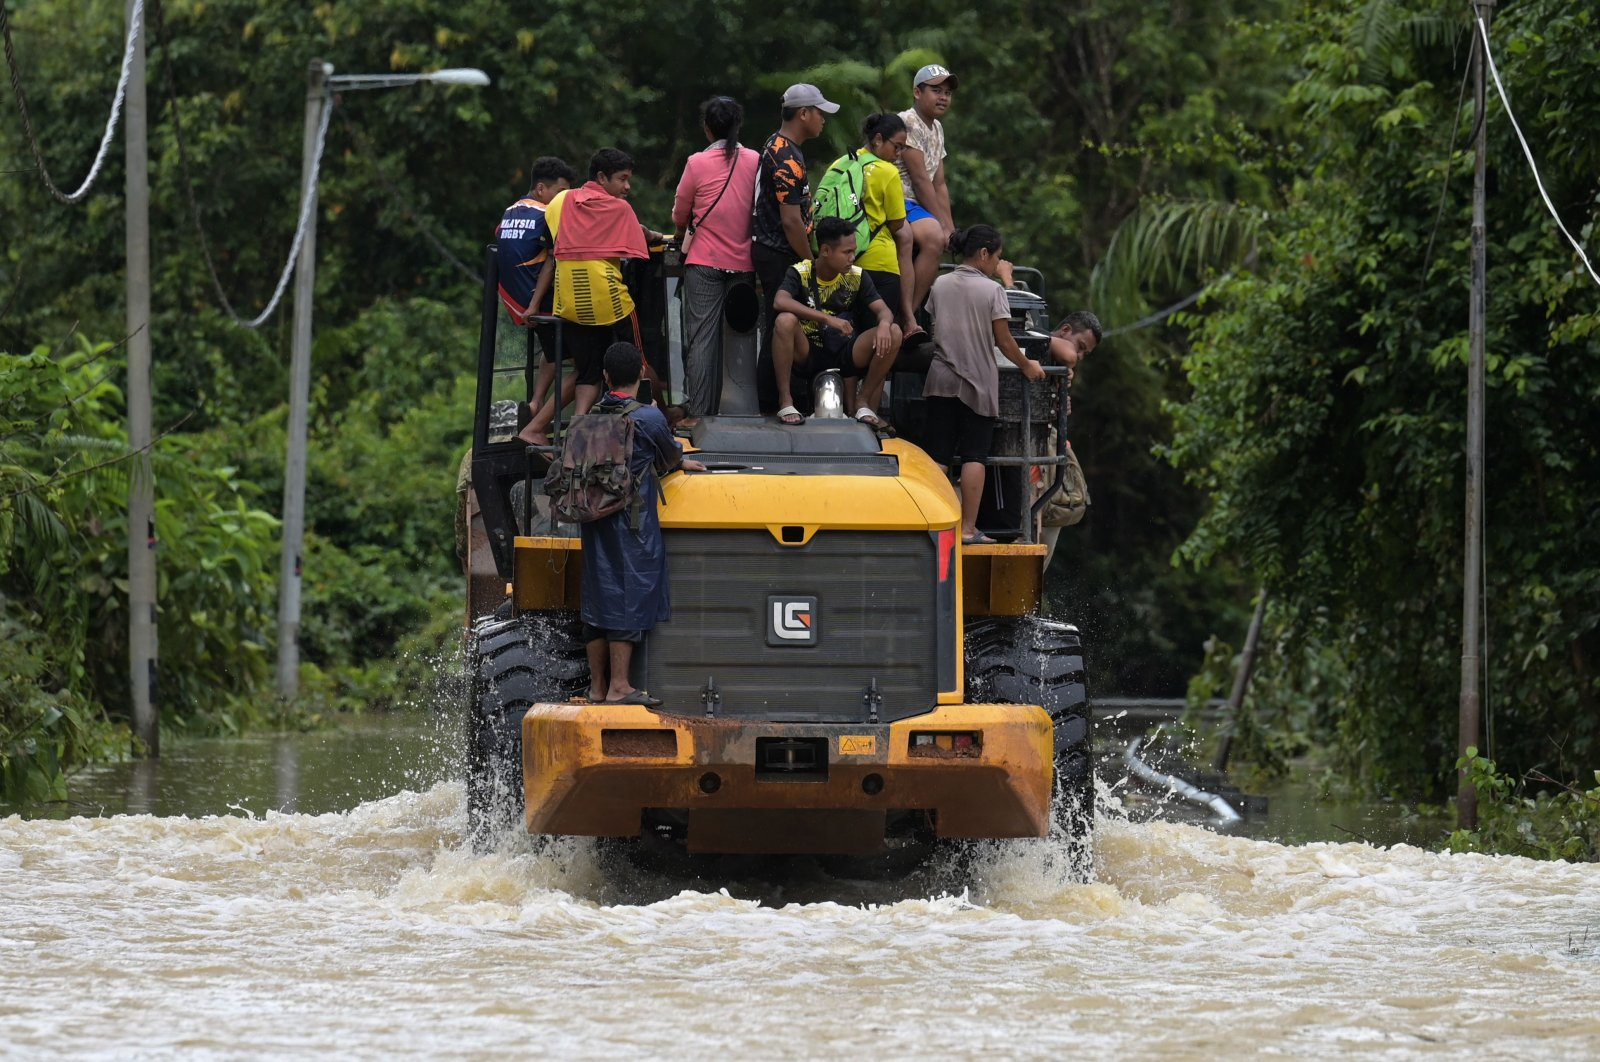 Residents ride a digger vehicle through floodwaters following a heavy monsoon downpour in Lanchang, Malaysia's Pahang state on Jan. 6, 2021. (AFP Photo)